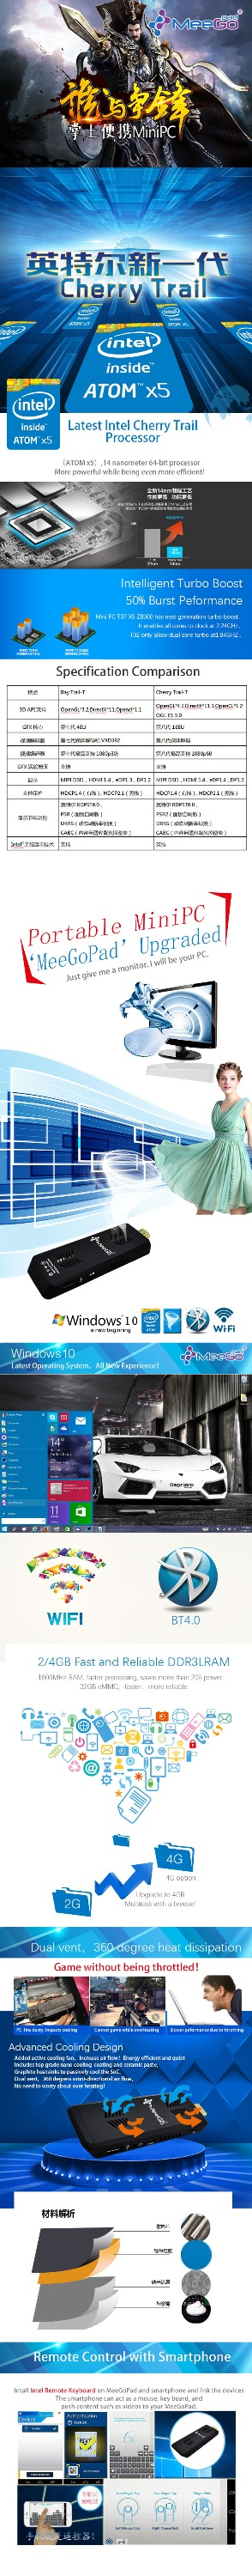 2015 Arrival! meegopad t07 mini pc 2g 32g quad core window pc meegopad t07 WiFi BT super mini pc